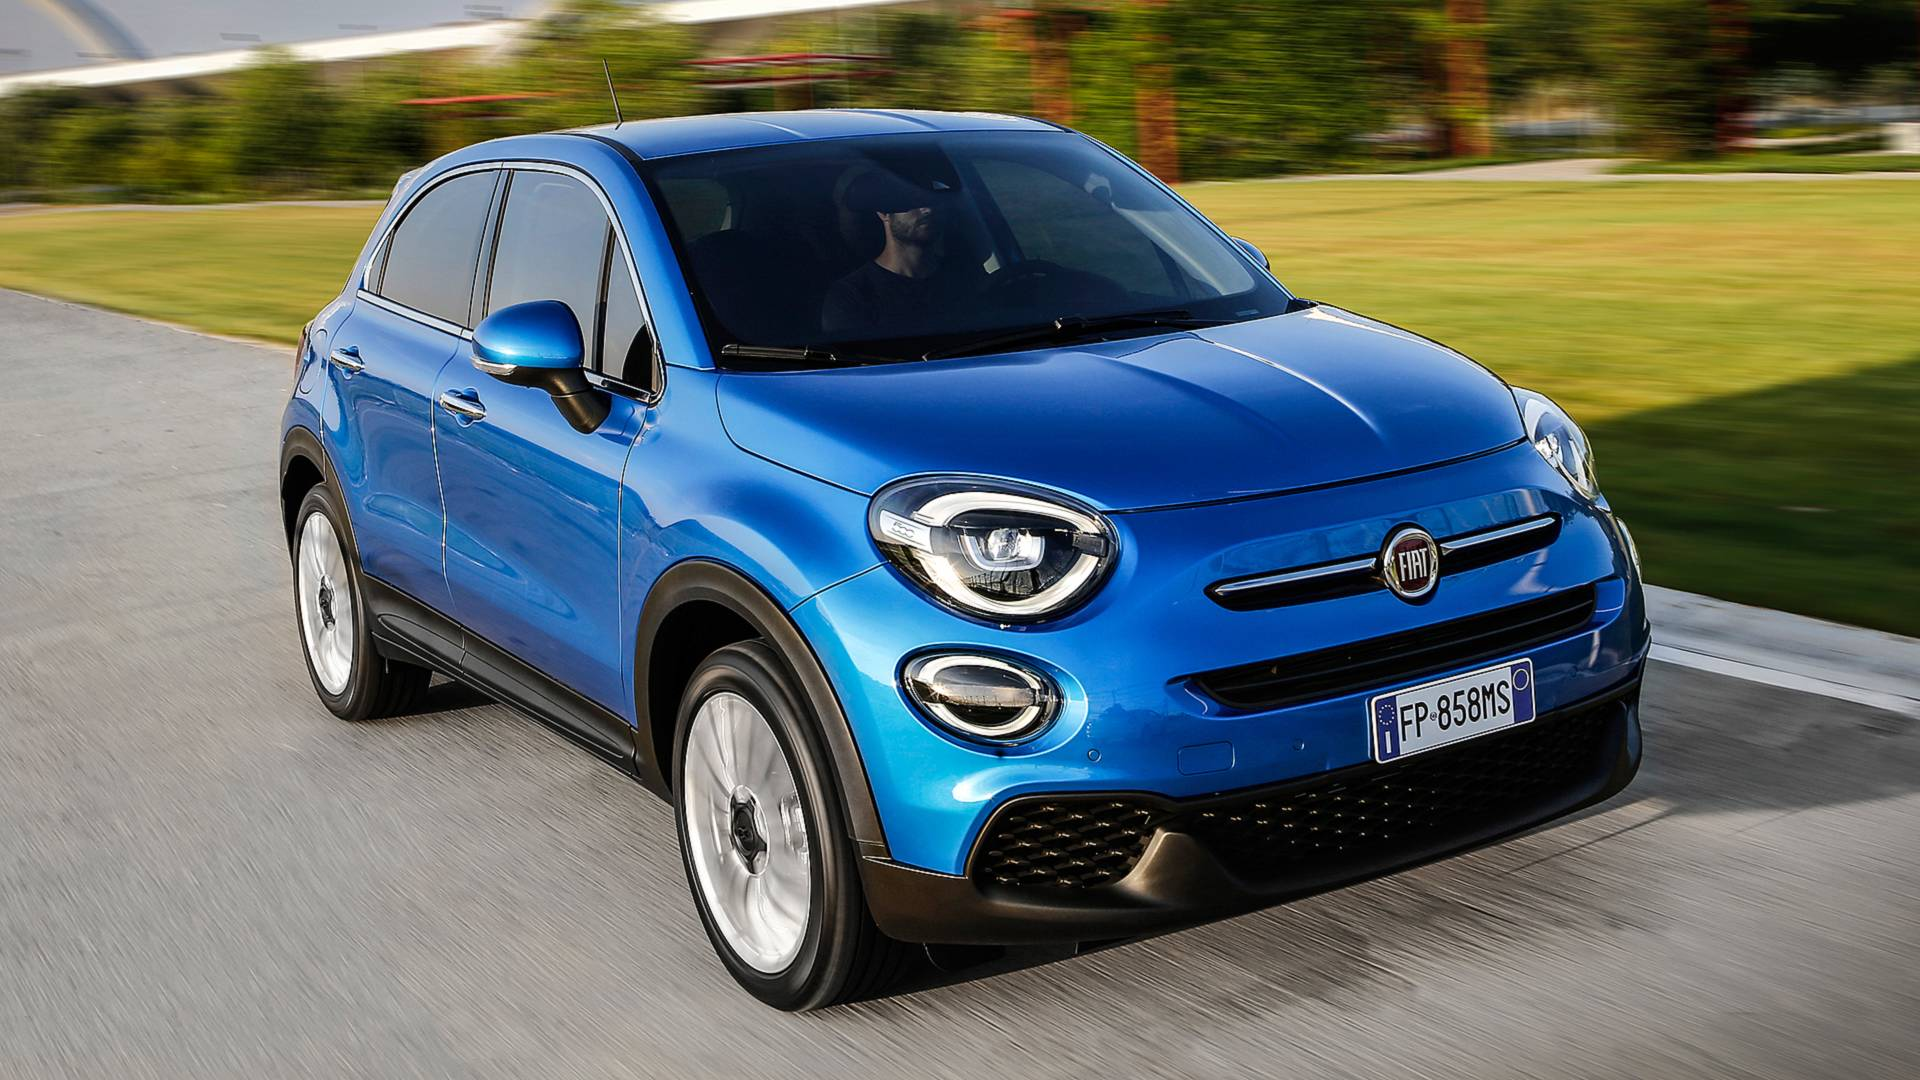 2019 Fiat 500x Unveiled With New Turbocharged Gasoline Engines